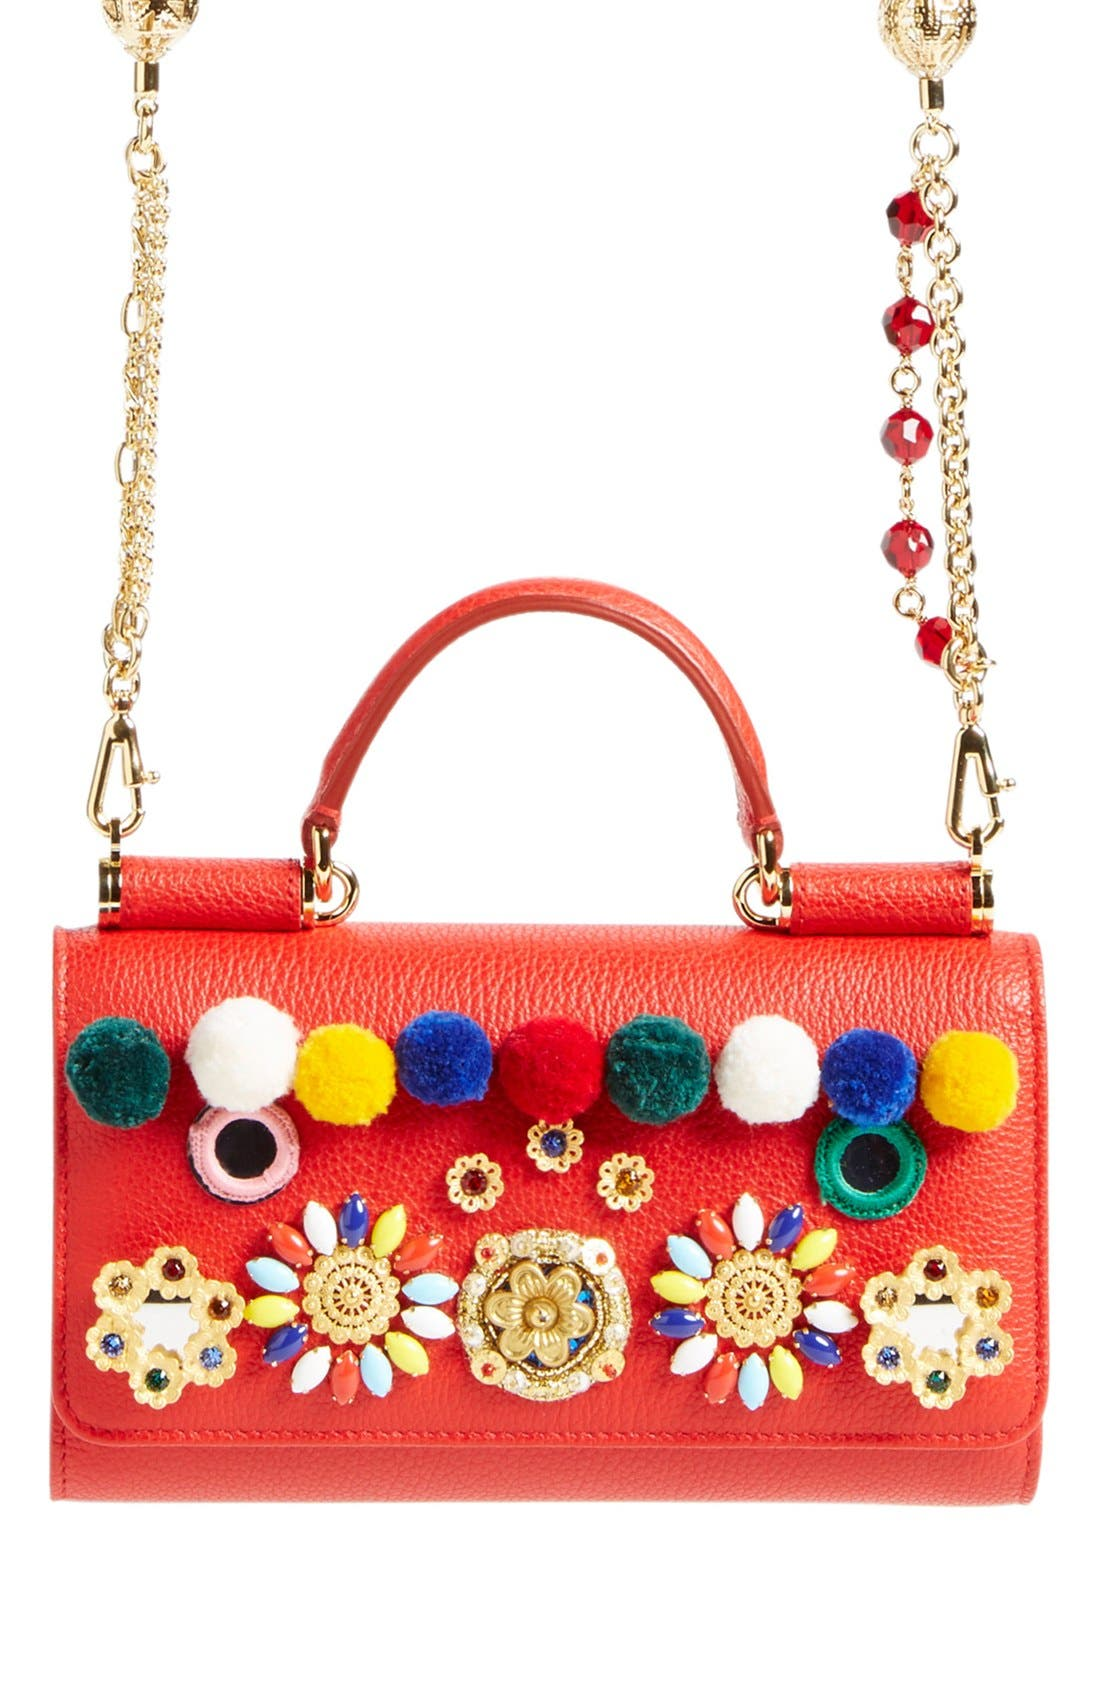 Main Image - Dolce&Gabbana 'Miss Sicily' Floral & Pompom Appliqué Calfskin Leather Wallet on a Chain